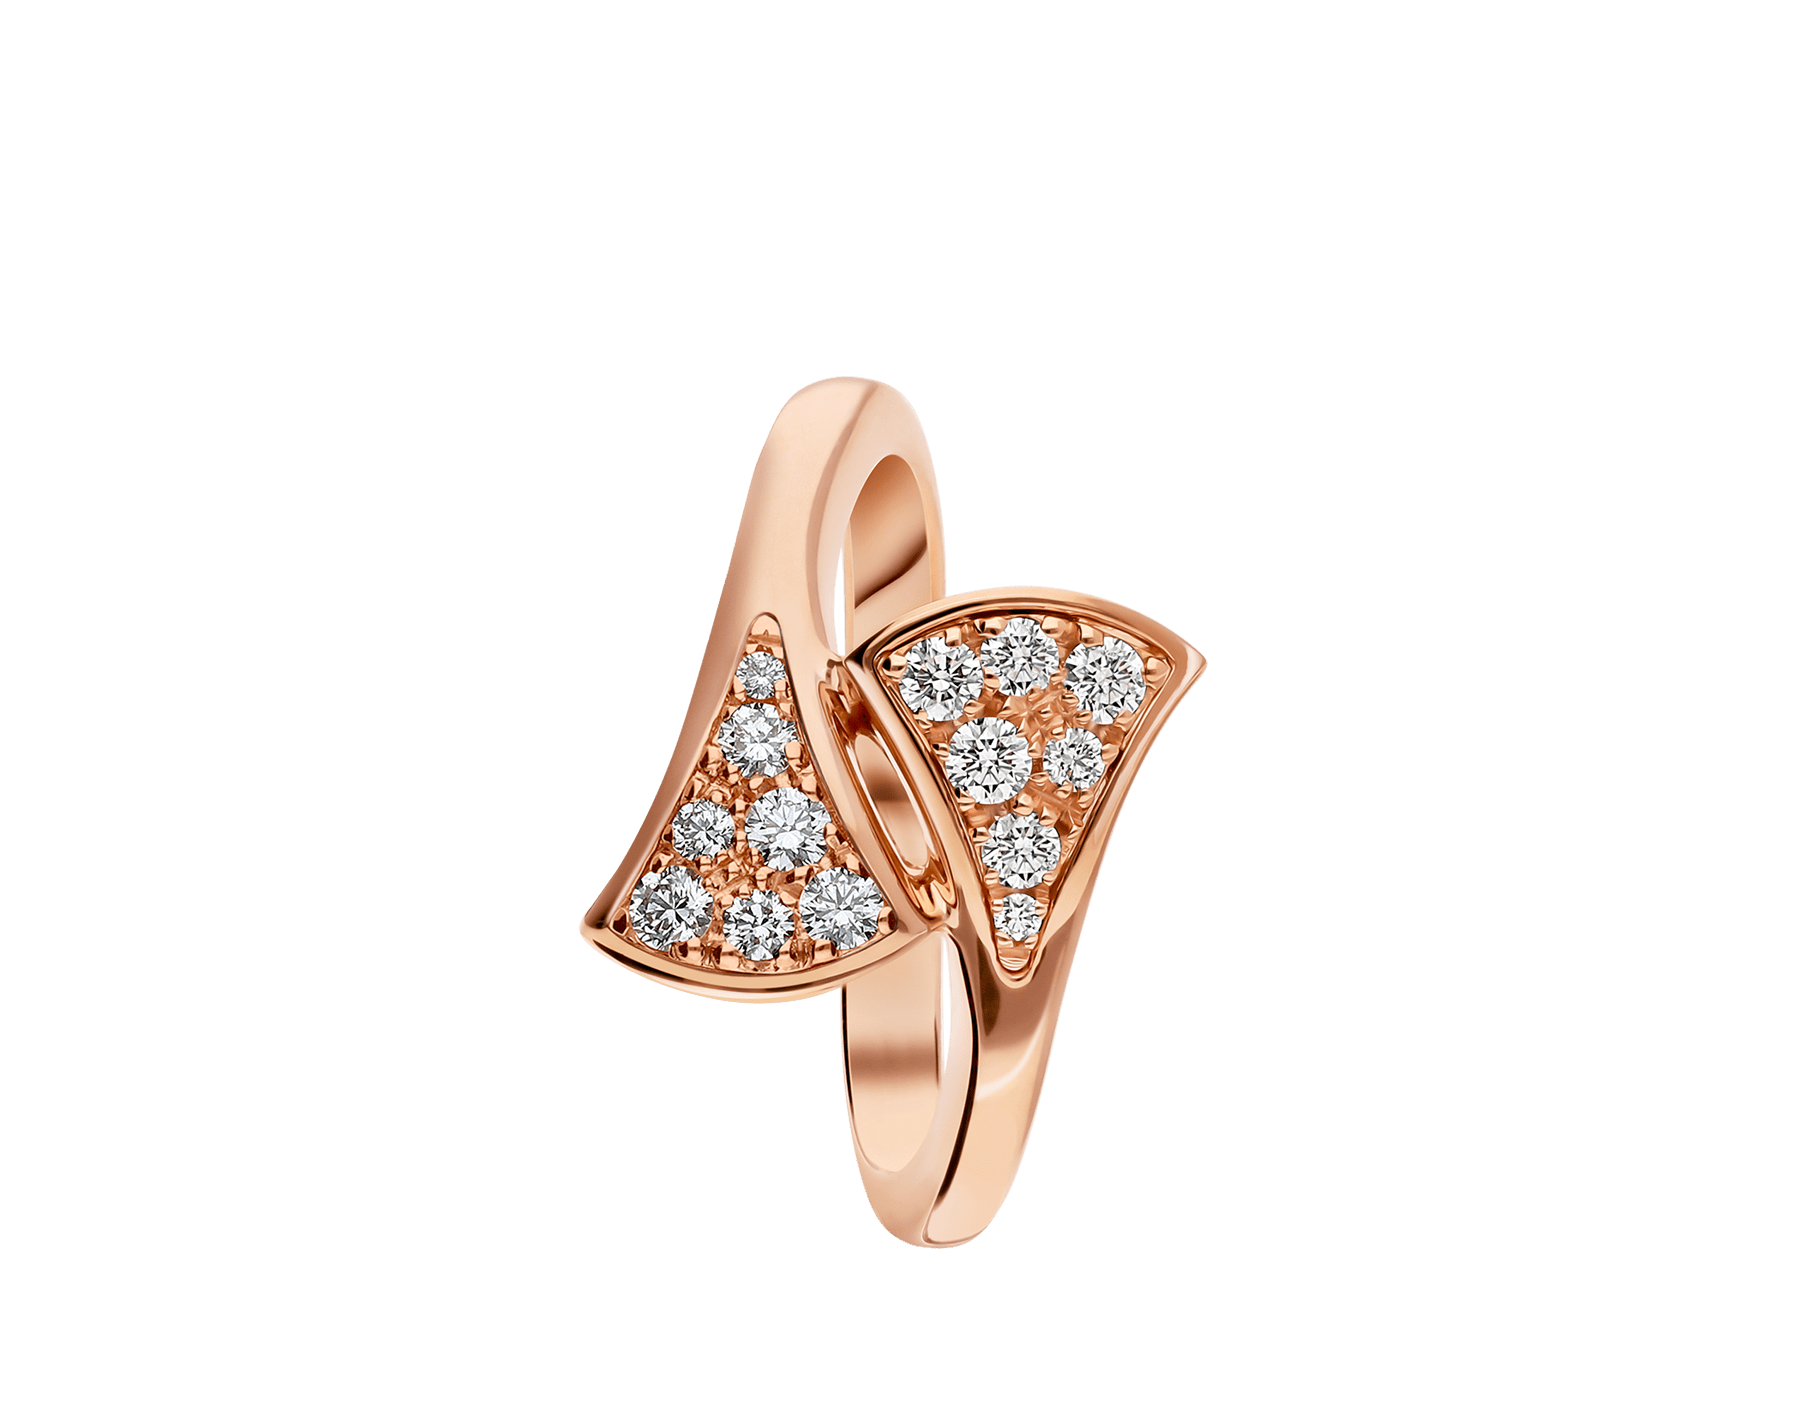 DIVAS' DREAM 18 kt rose gold ring set with pavé diamonds (0.20 ct) AN858647 image 2